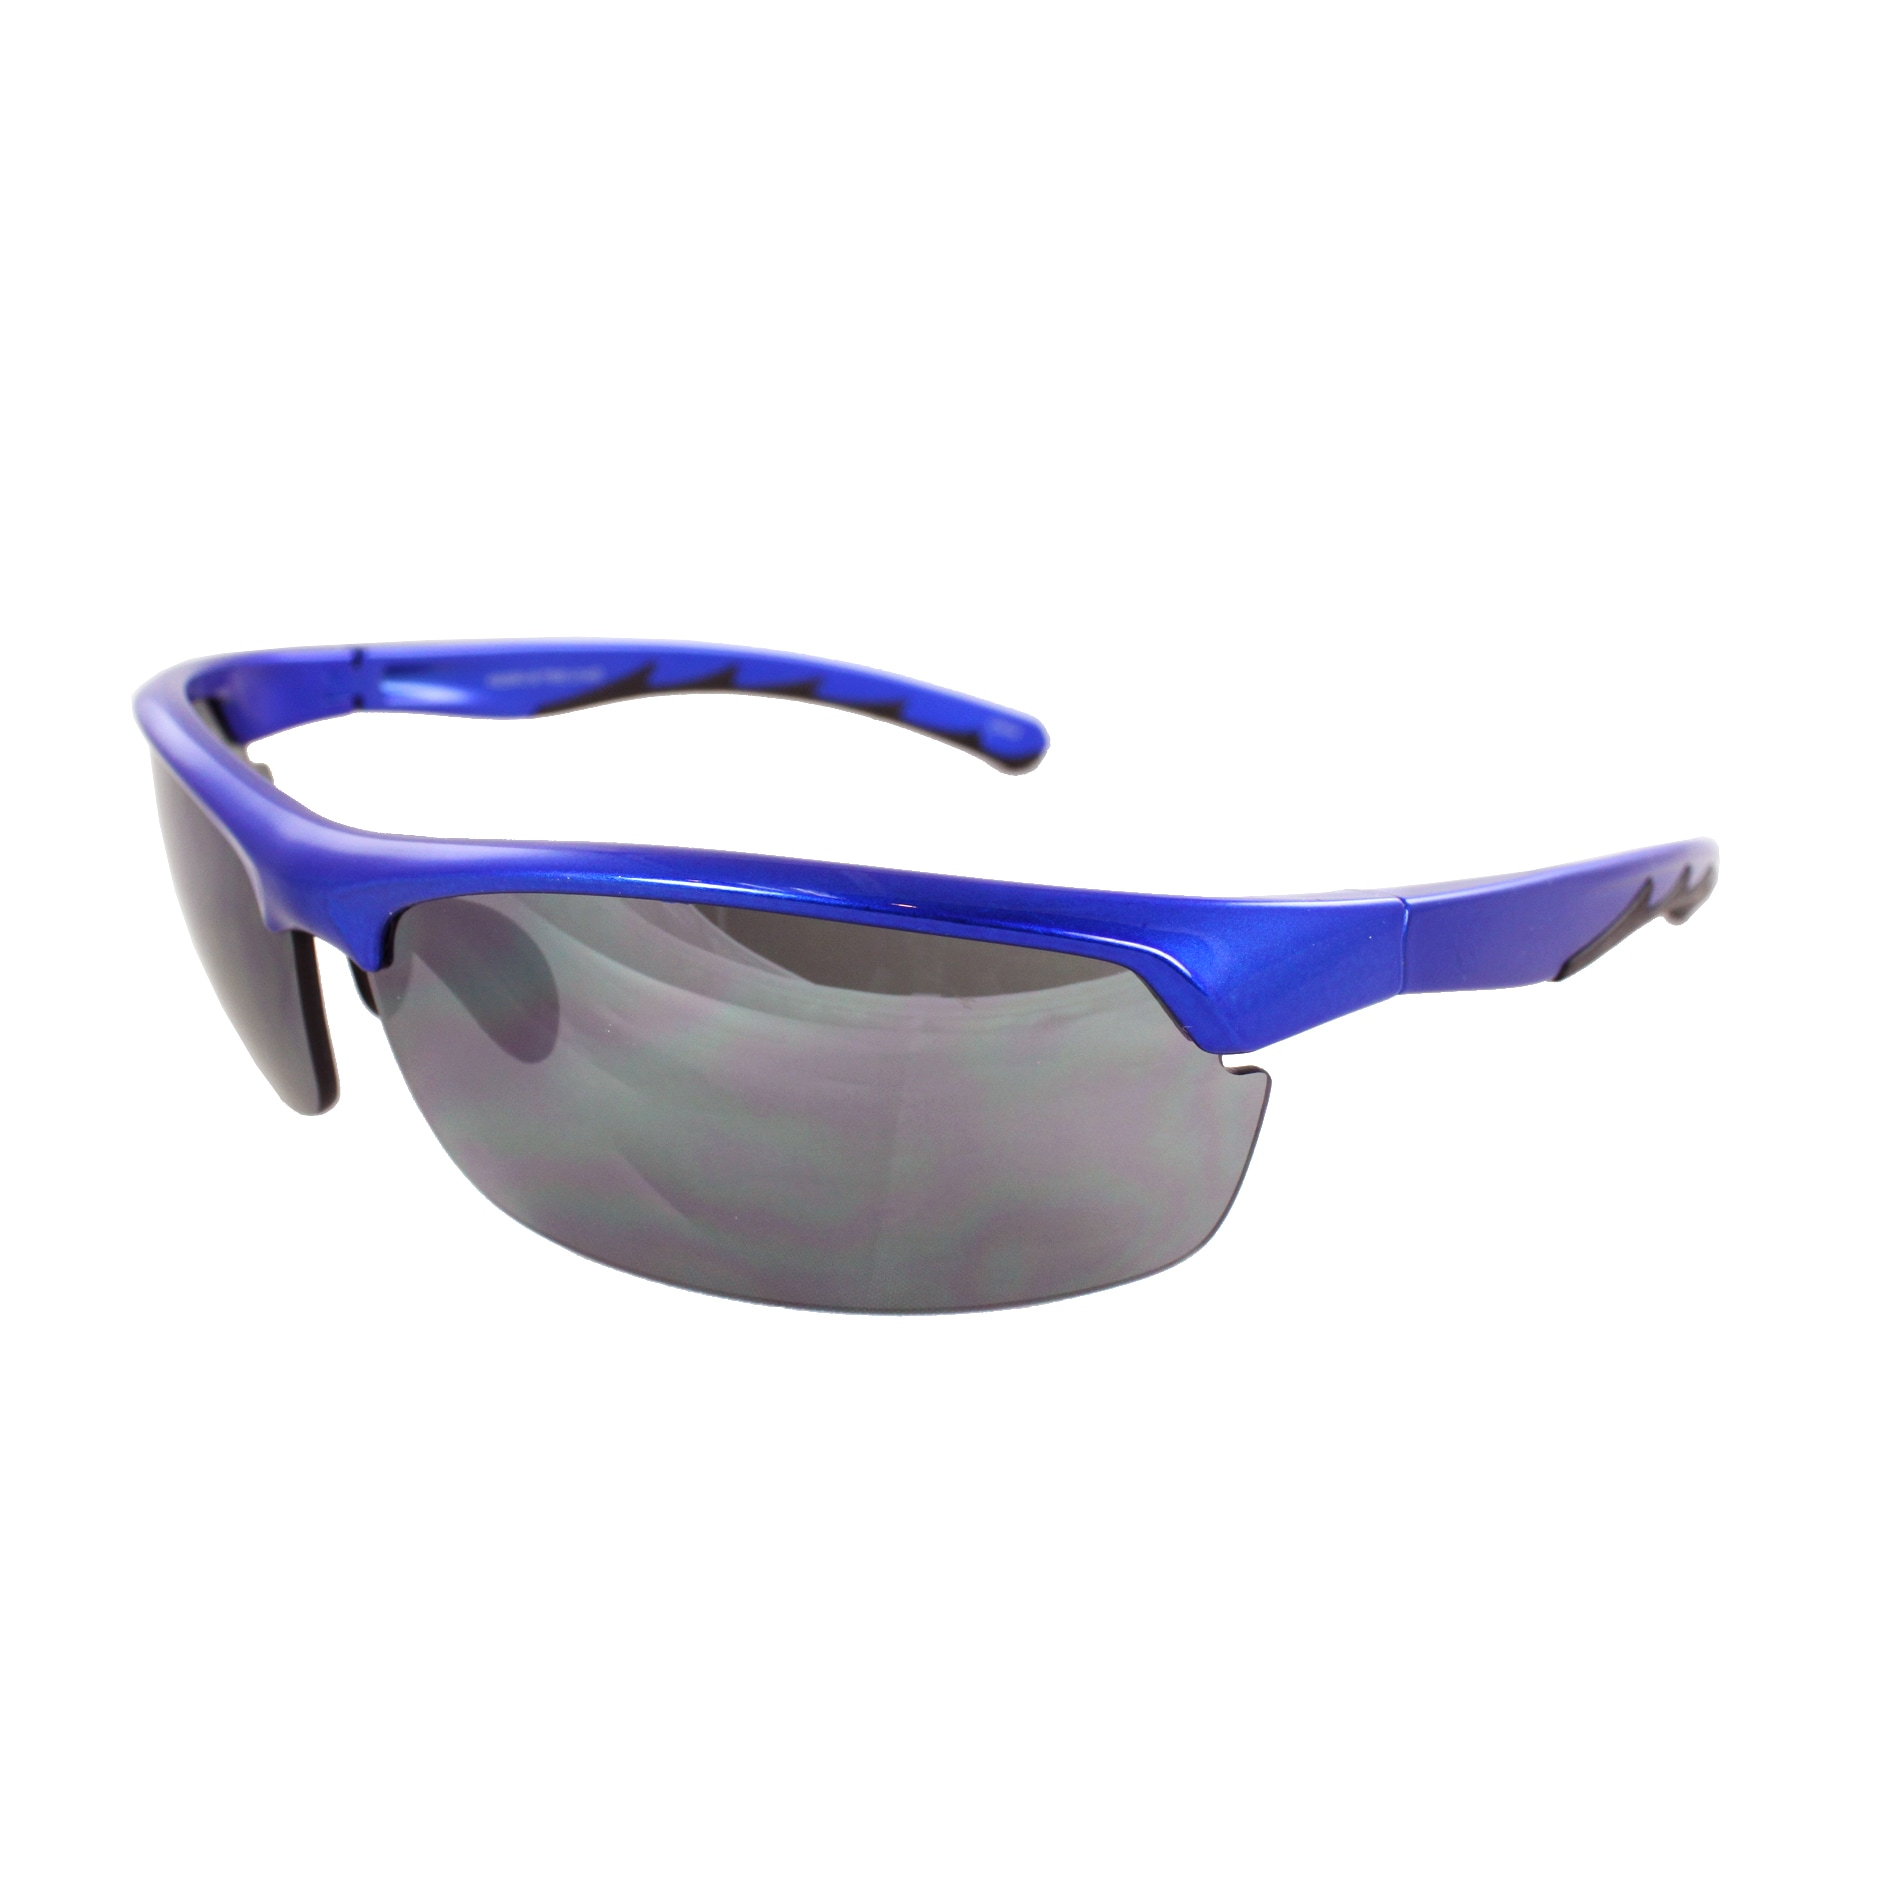 Unisex Blue/Black Semi-Rimless Wrap Sunglasses